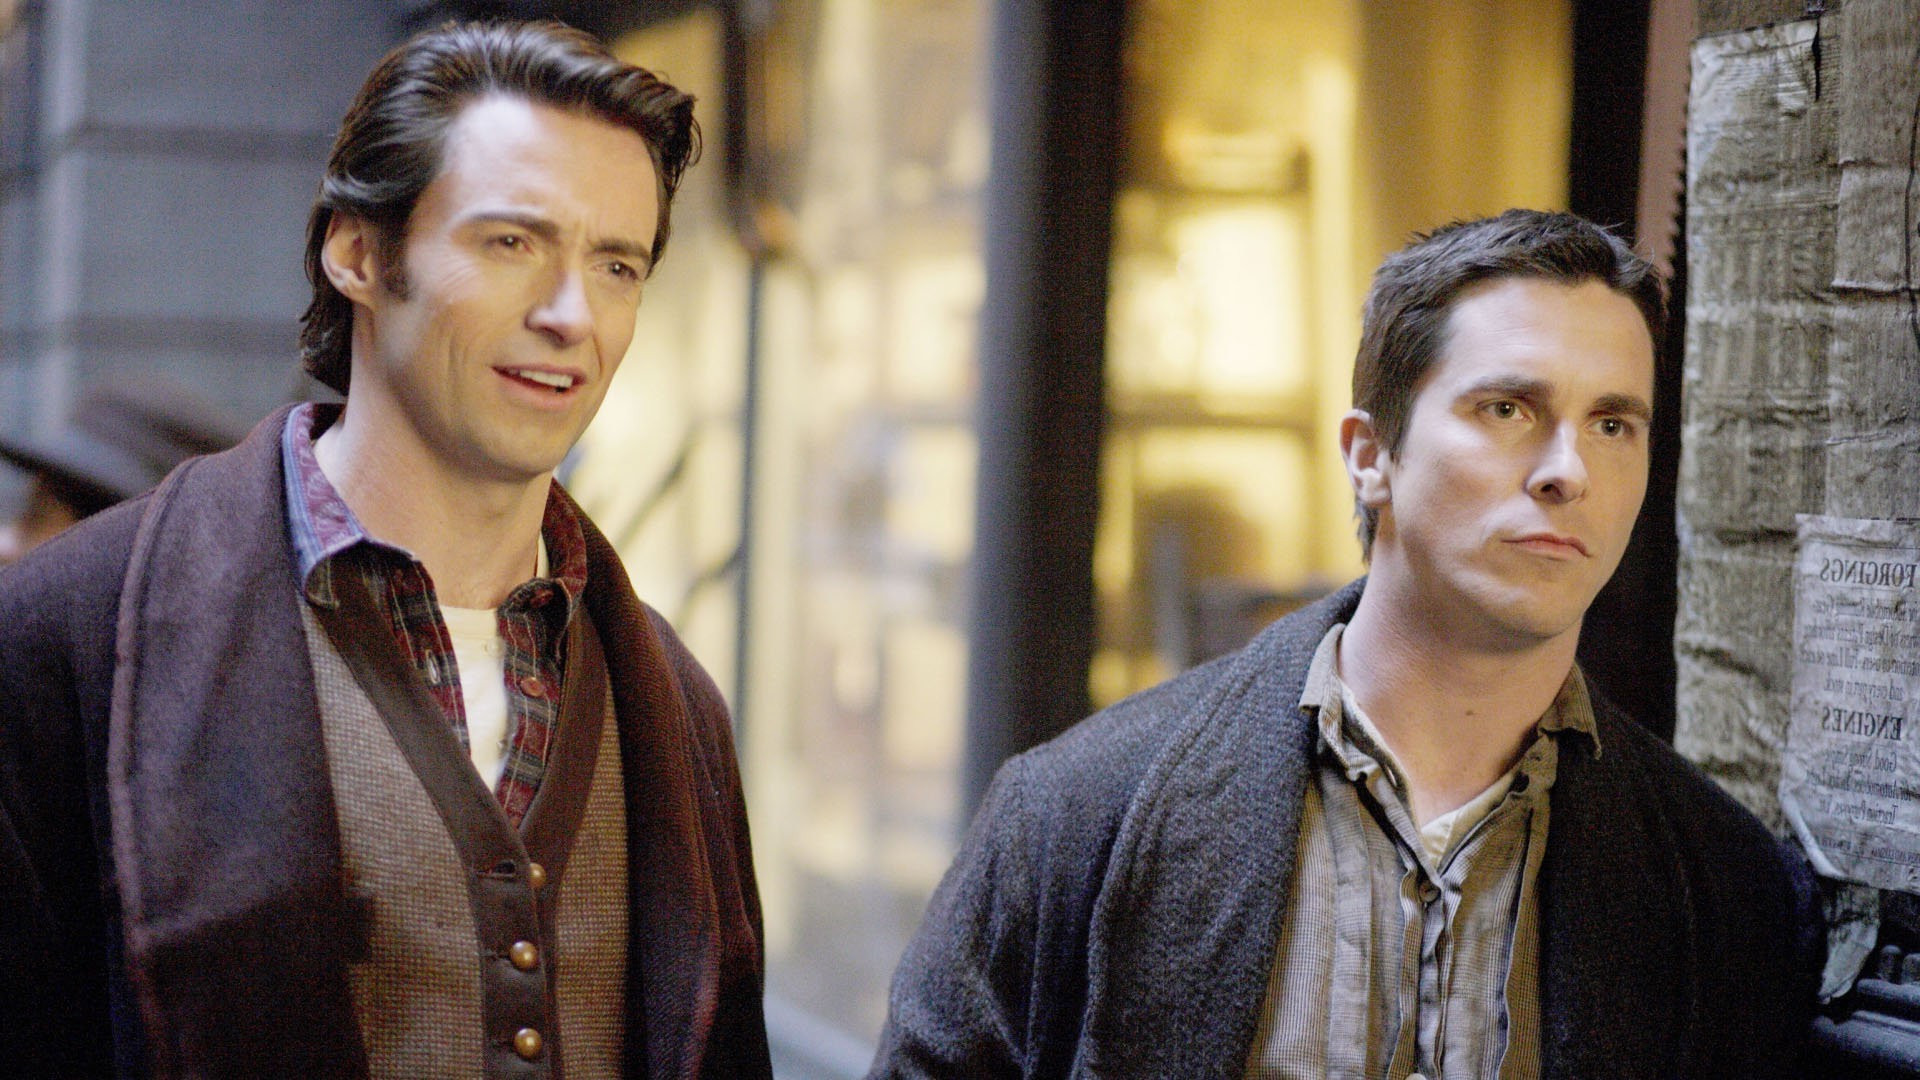 The Prestige Wallpaper 16   1920 X 1080 stmednet 1920x1080